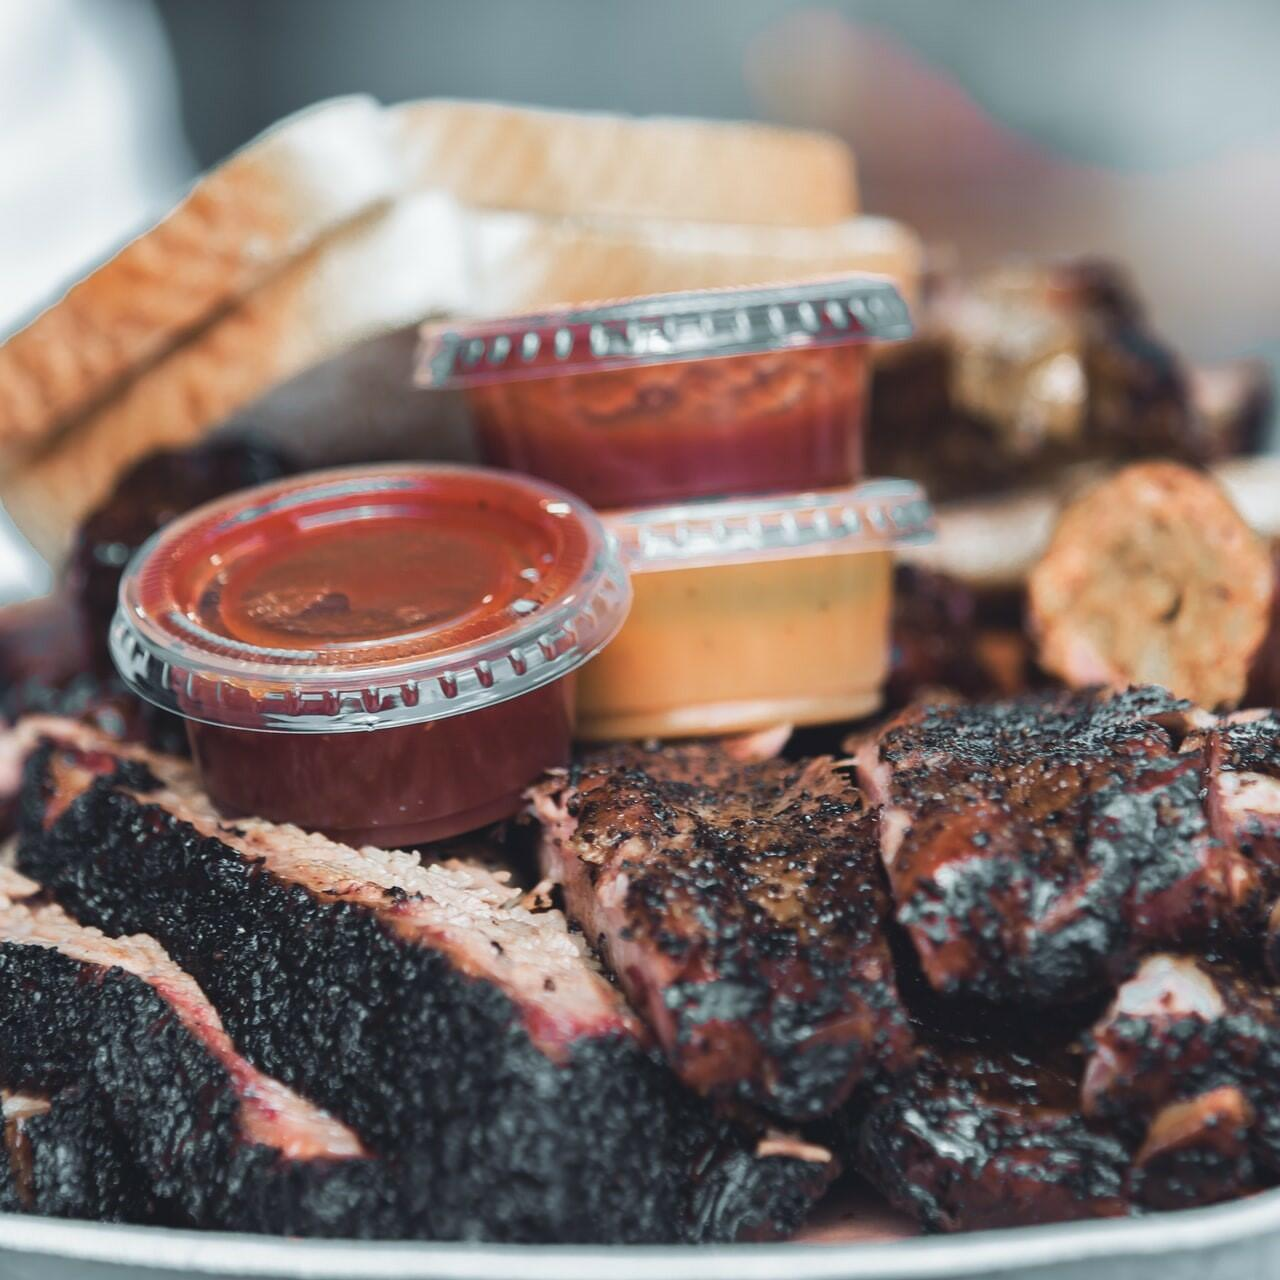 A closeup picture of barbeque meat with sauces and bread